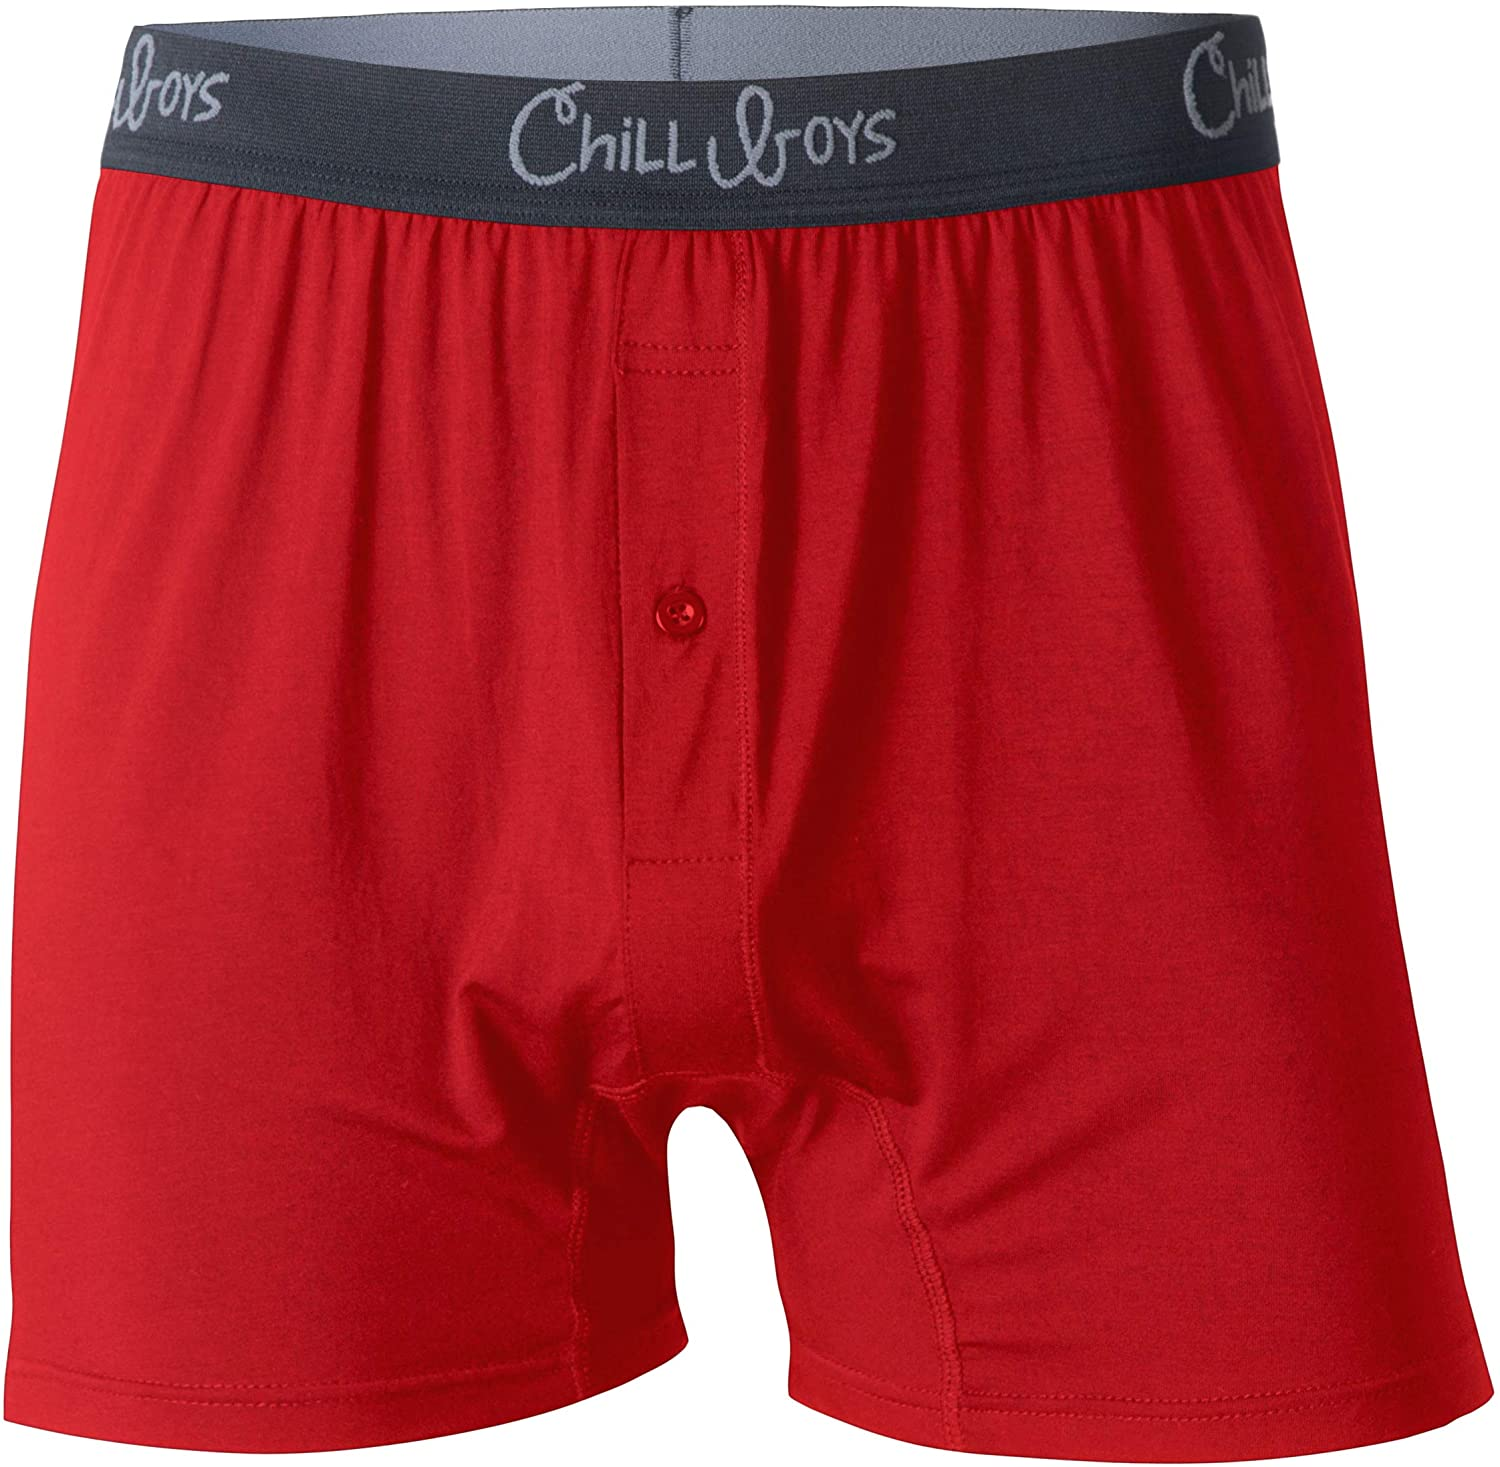 Soft Sale Bamboo Tucson Mall Boxers for Men - Mens Comfortable U Cool Breathable